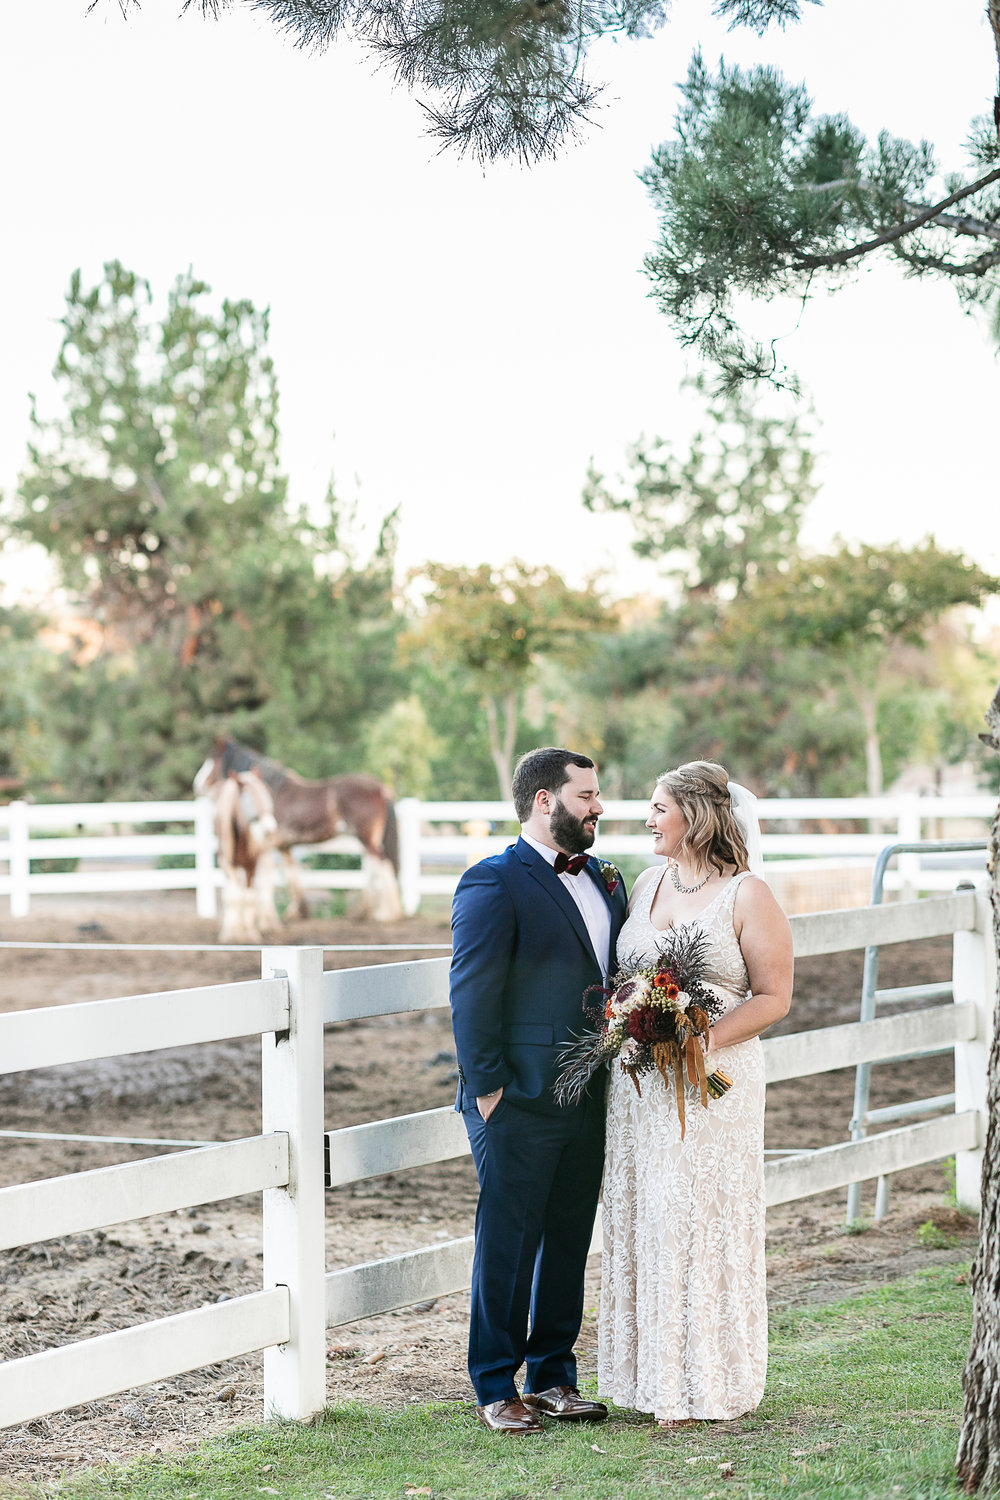 Kathryn and Dustin Temecula Longshadow Ranch Winery Wedding-28.jpg